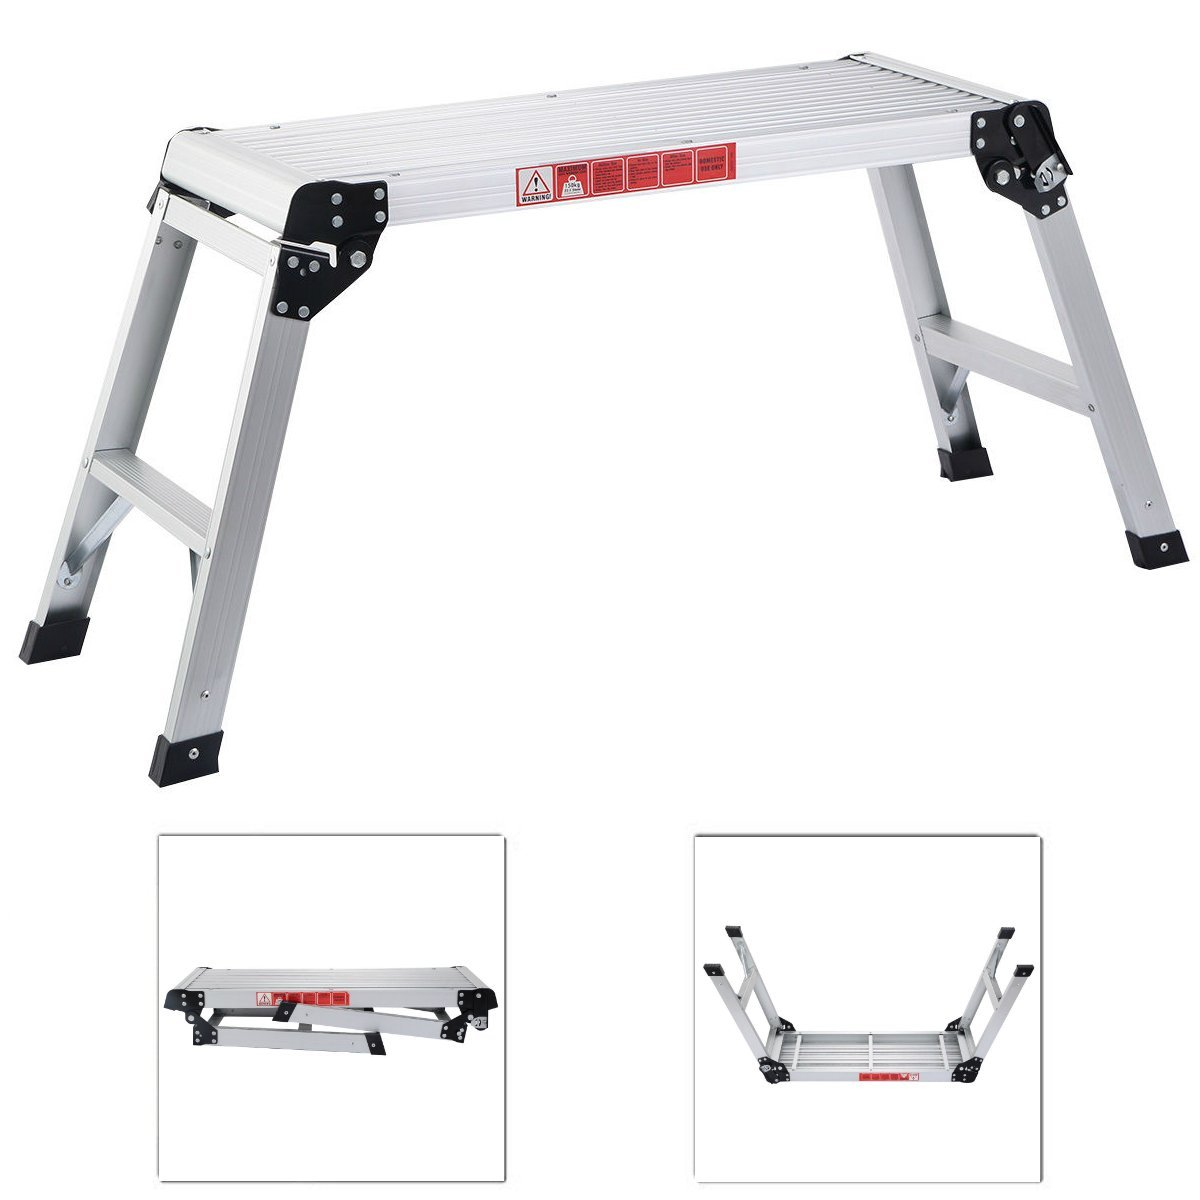 Eosphor US Sturdy HD Construction Aluminum Folding Work Bench Platform Drywall Step Up Stool Ladder | Washing Cleaning Decorating Maintenance